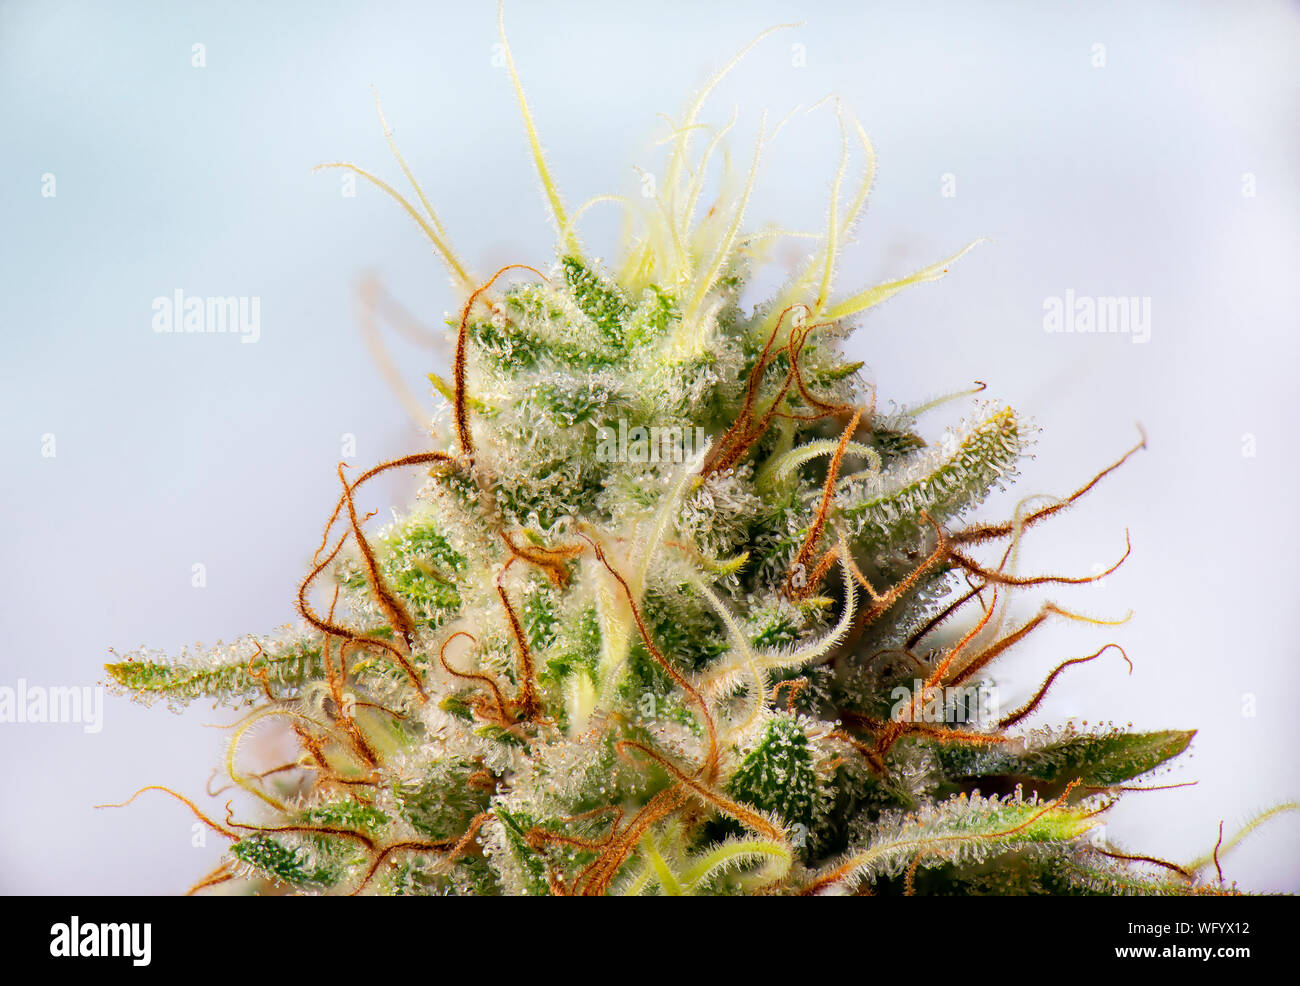 Macro detail of Cannabis flower (white critical strain) with visible trichomes, medical marijuana concept Stock Photo